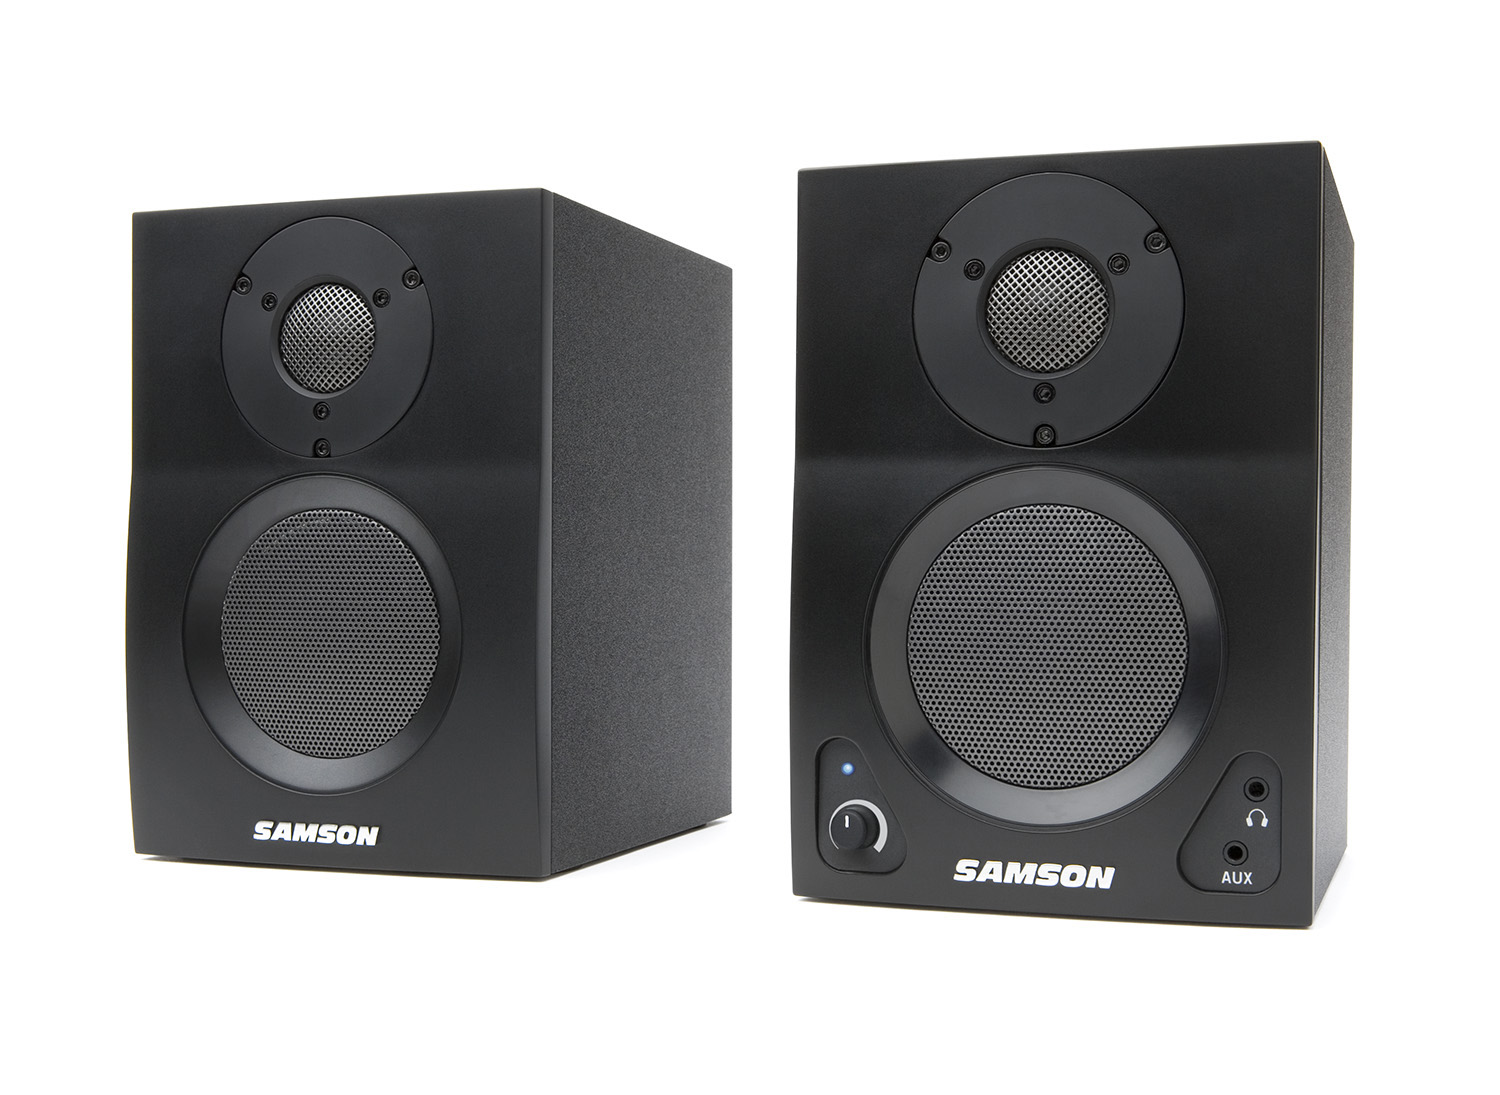 Samson Mediaone Bt3 Electronics Gt Tv Video Home Audio Speakers Subwoofers